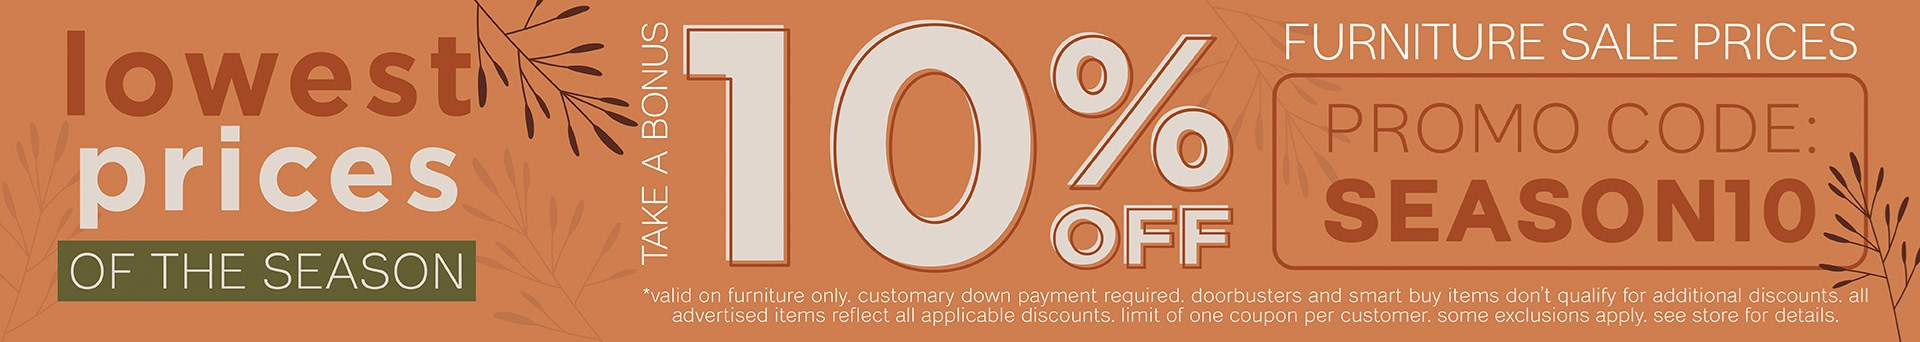 Furnitur & ApplianceMart Lowest Prices of the Season